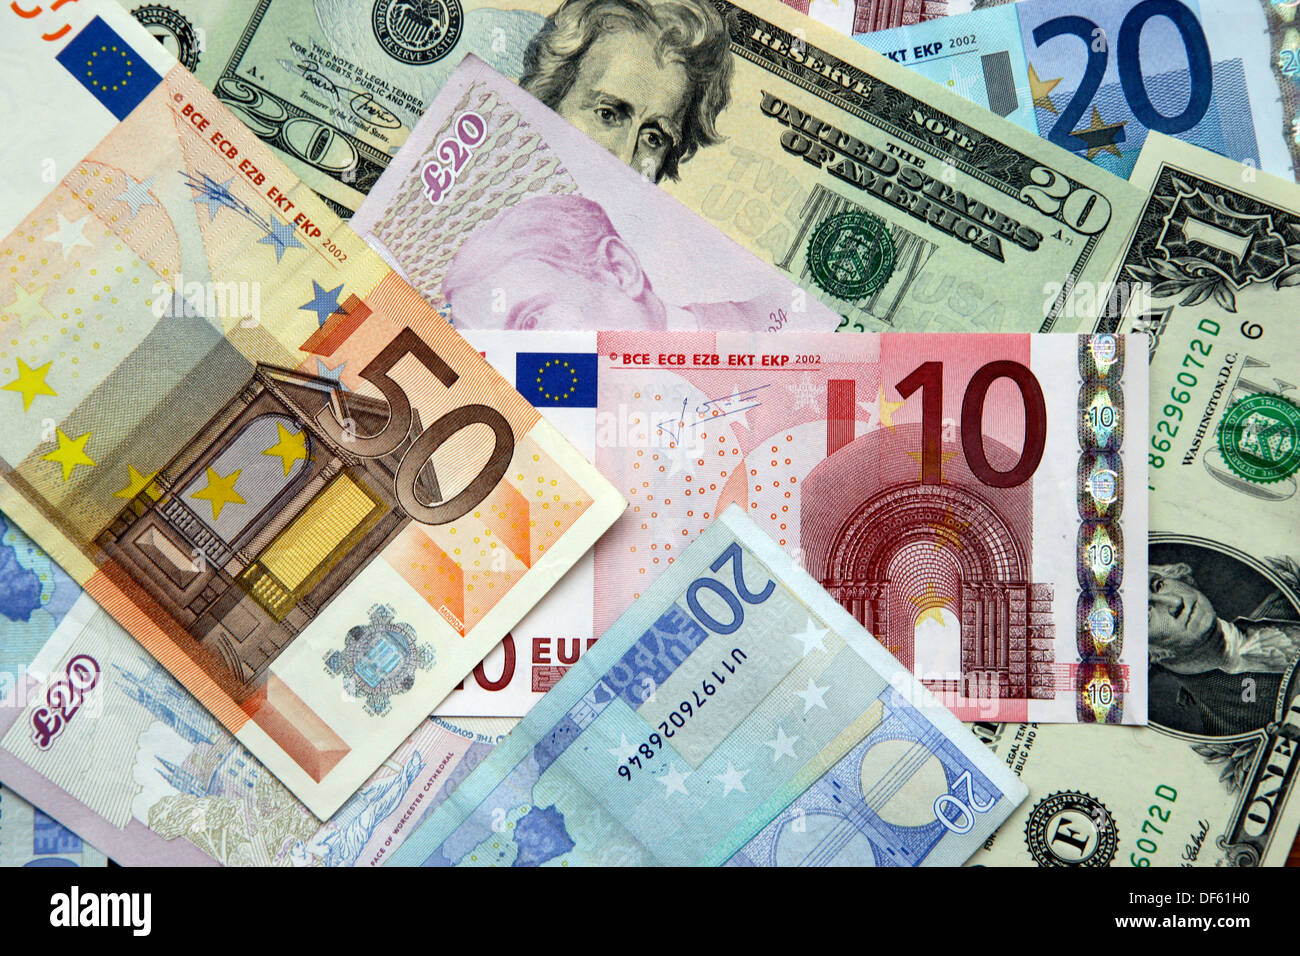 Dollars, Pounds Sterling and Euros - Stock Image